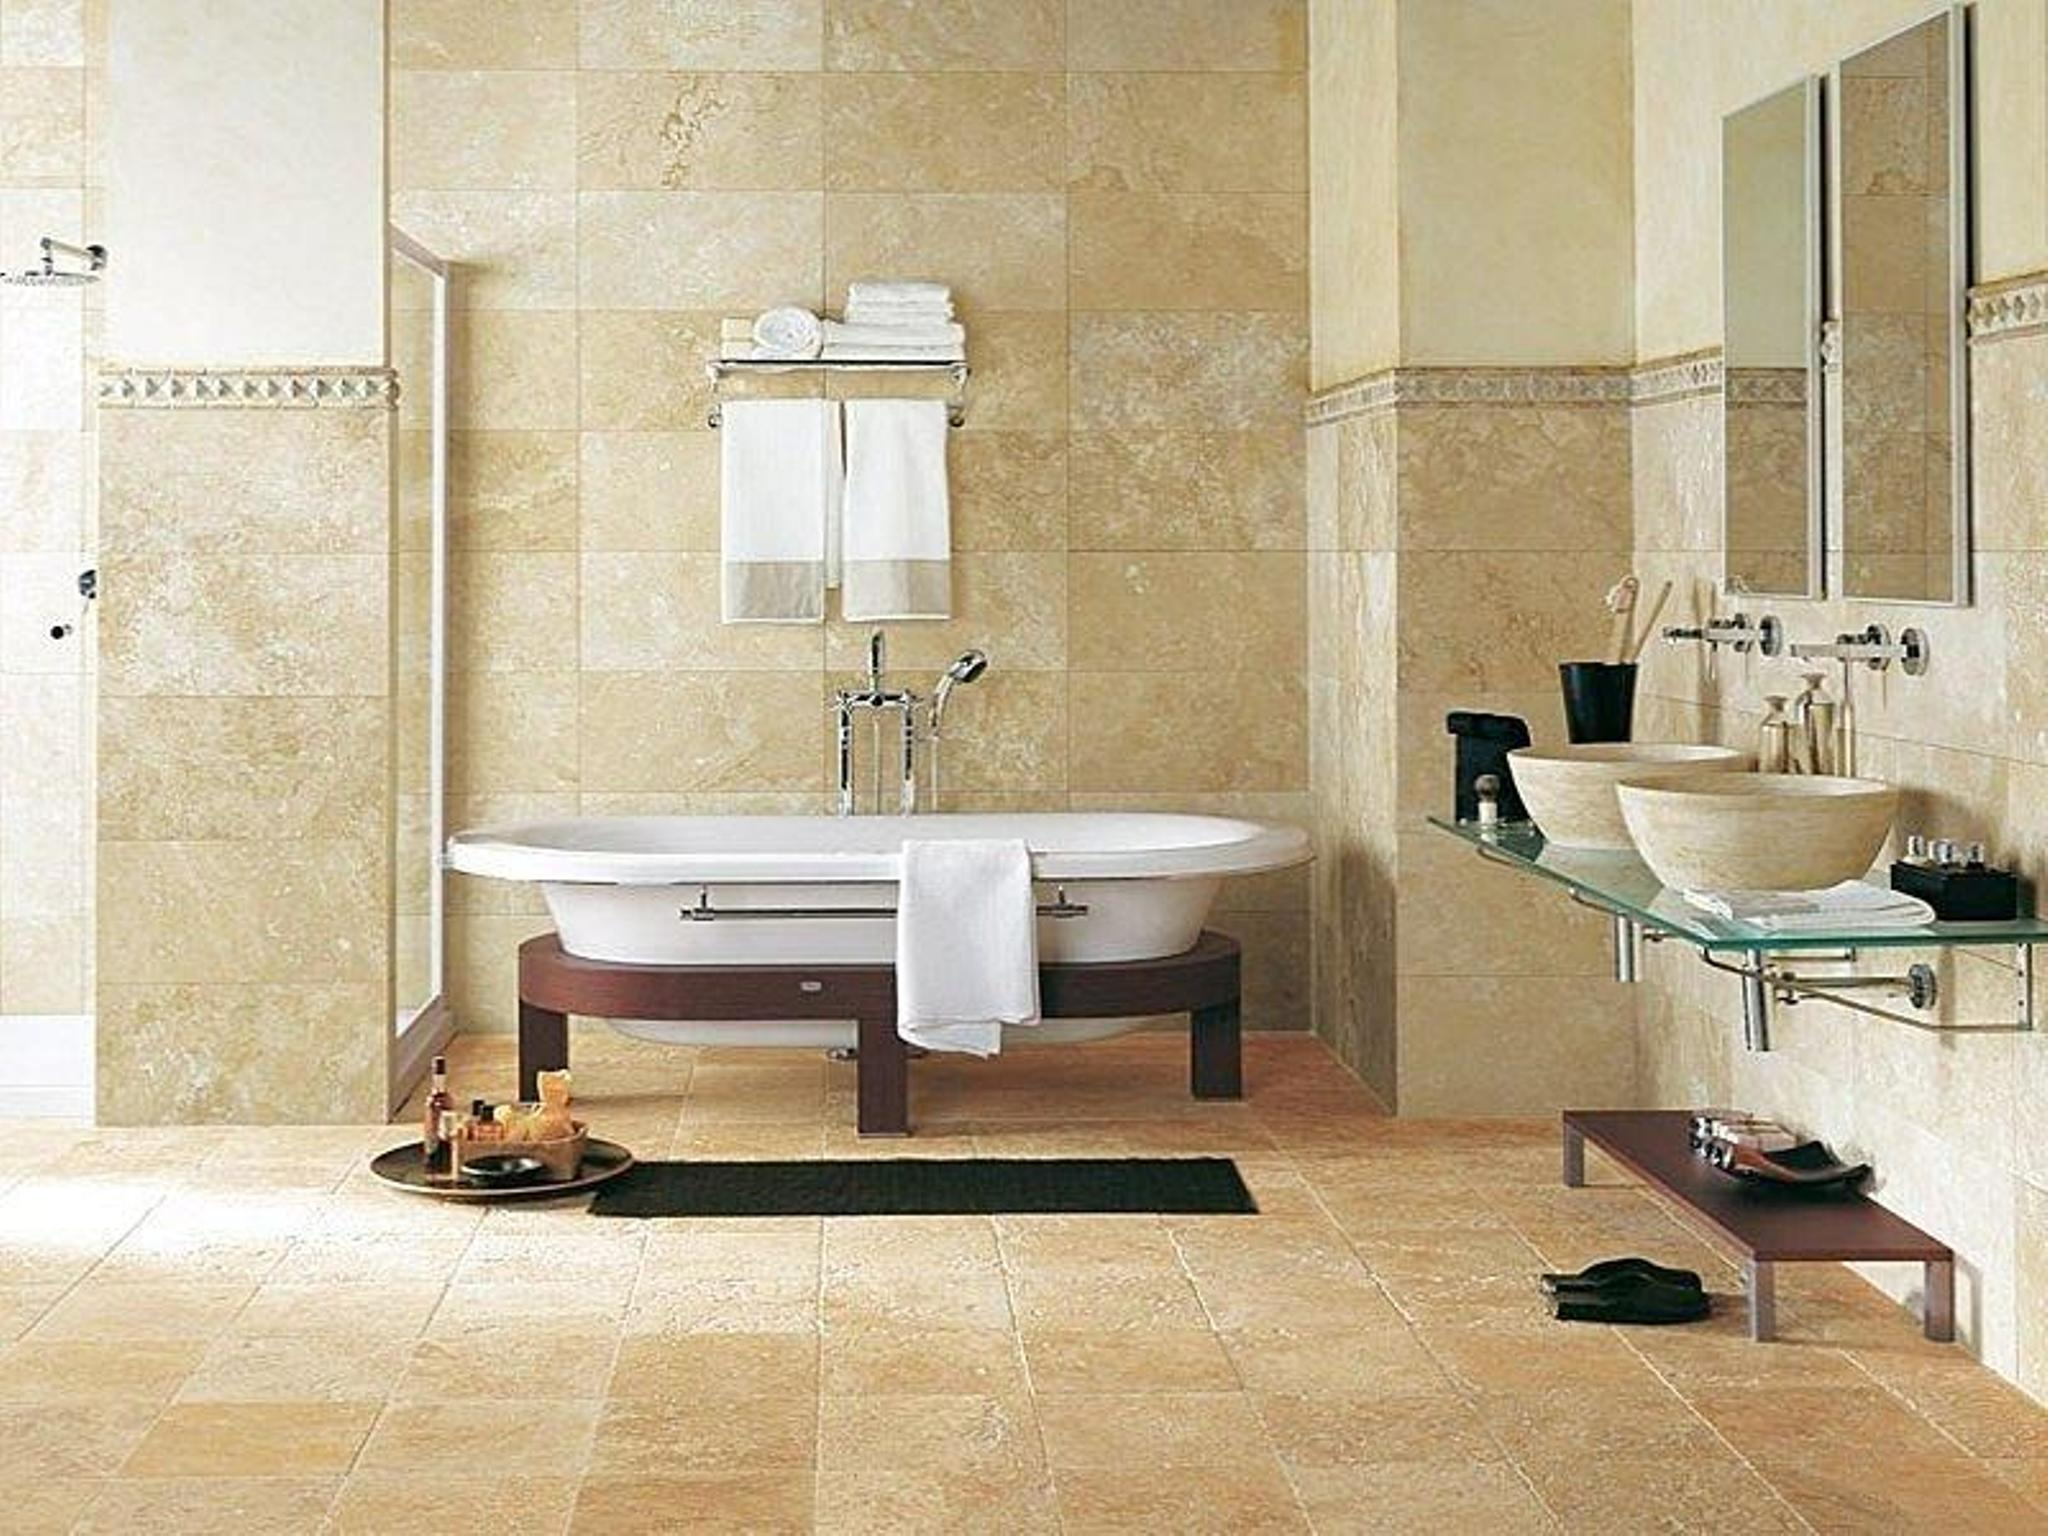 Tile Designs For Bathroom Ideas ~ Pictures and ideas of travertine tile designs for bathrooms